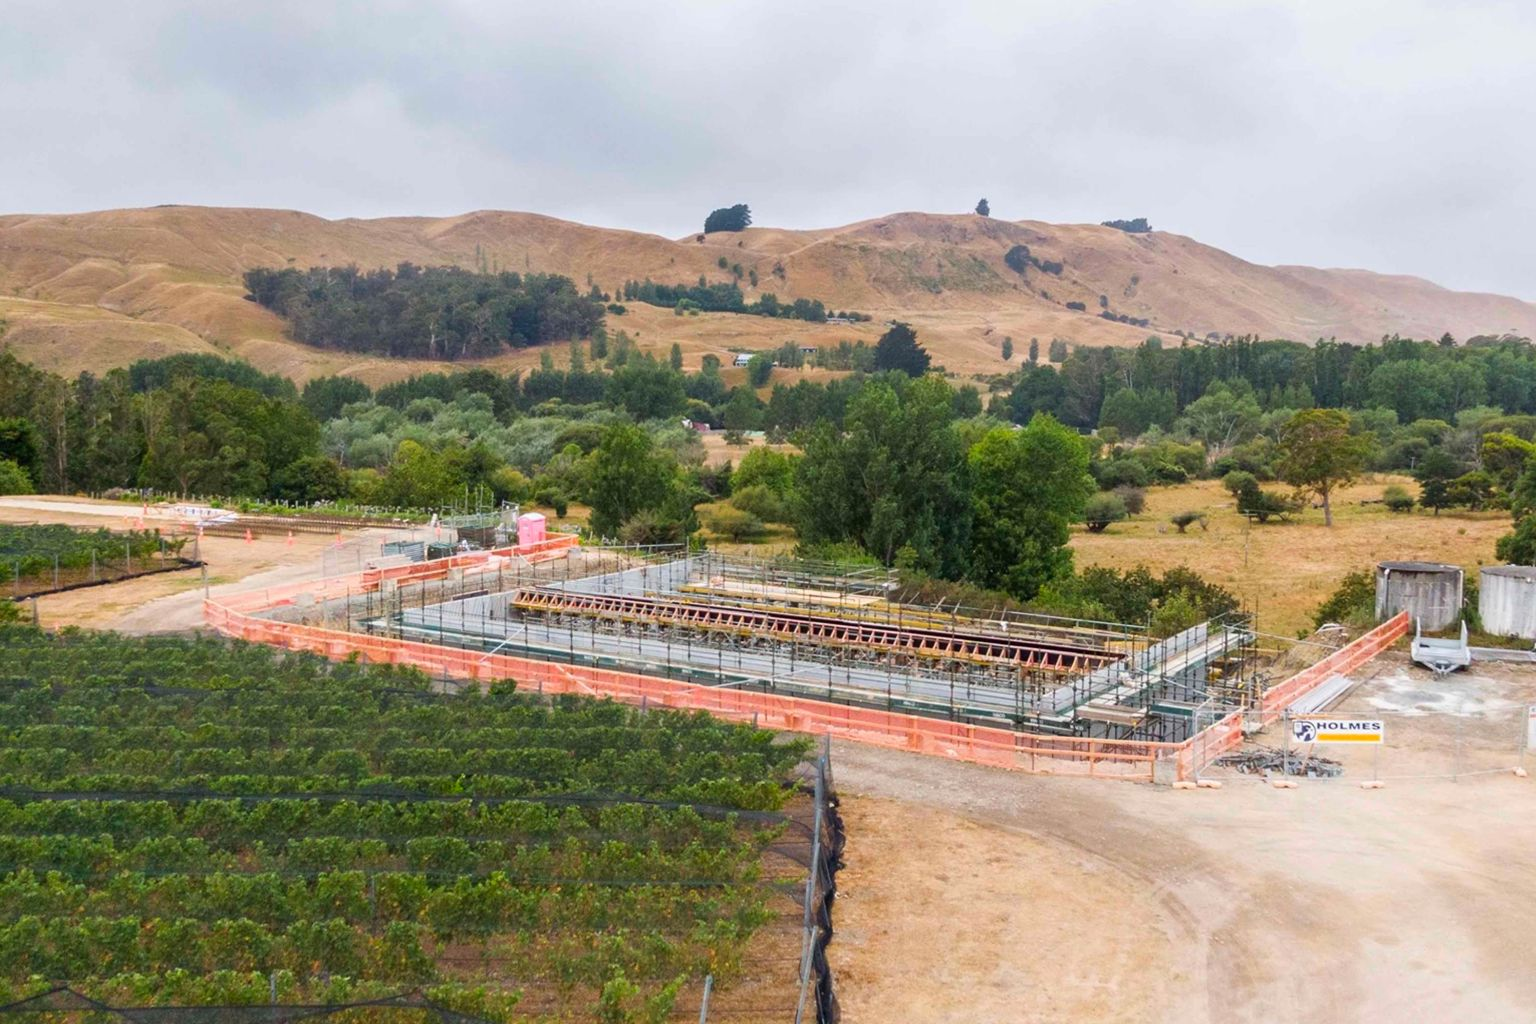 Coming soon - Wine and Gin destination in Martinborough: Construction is full steam ahead